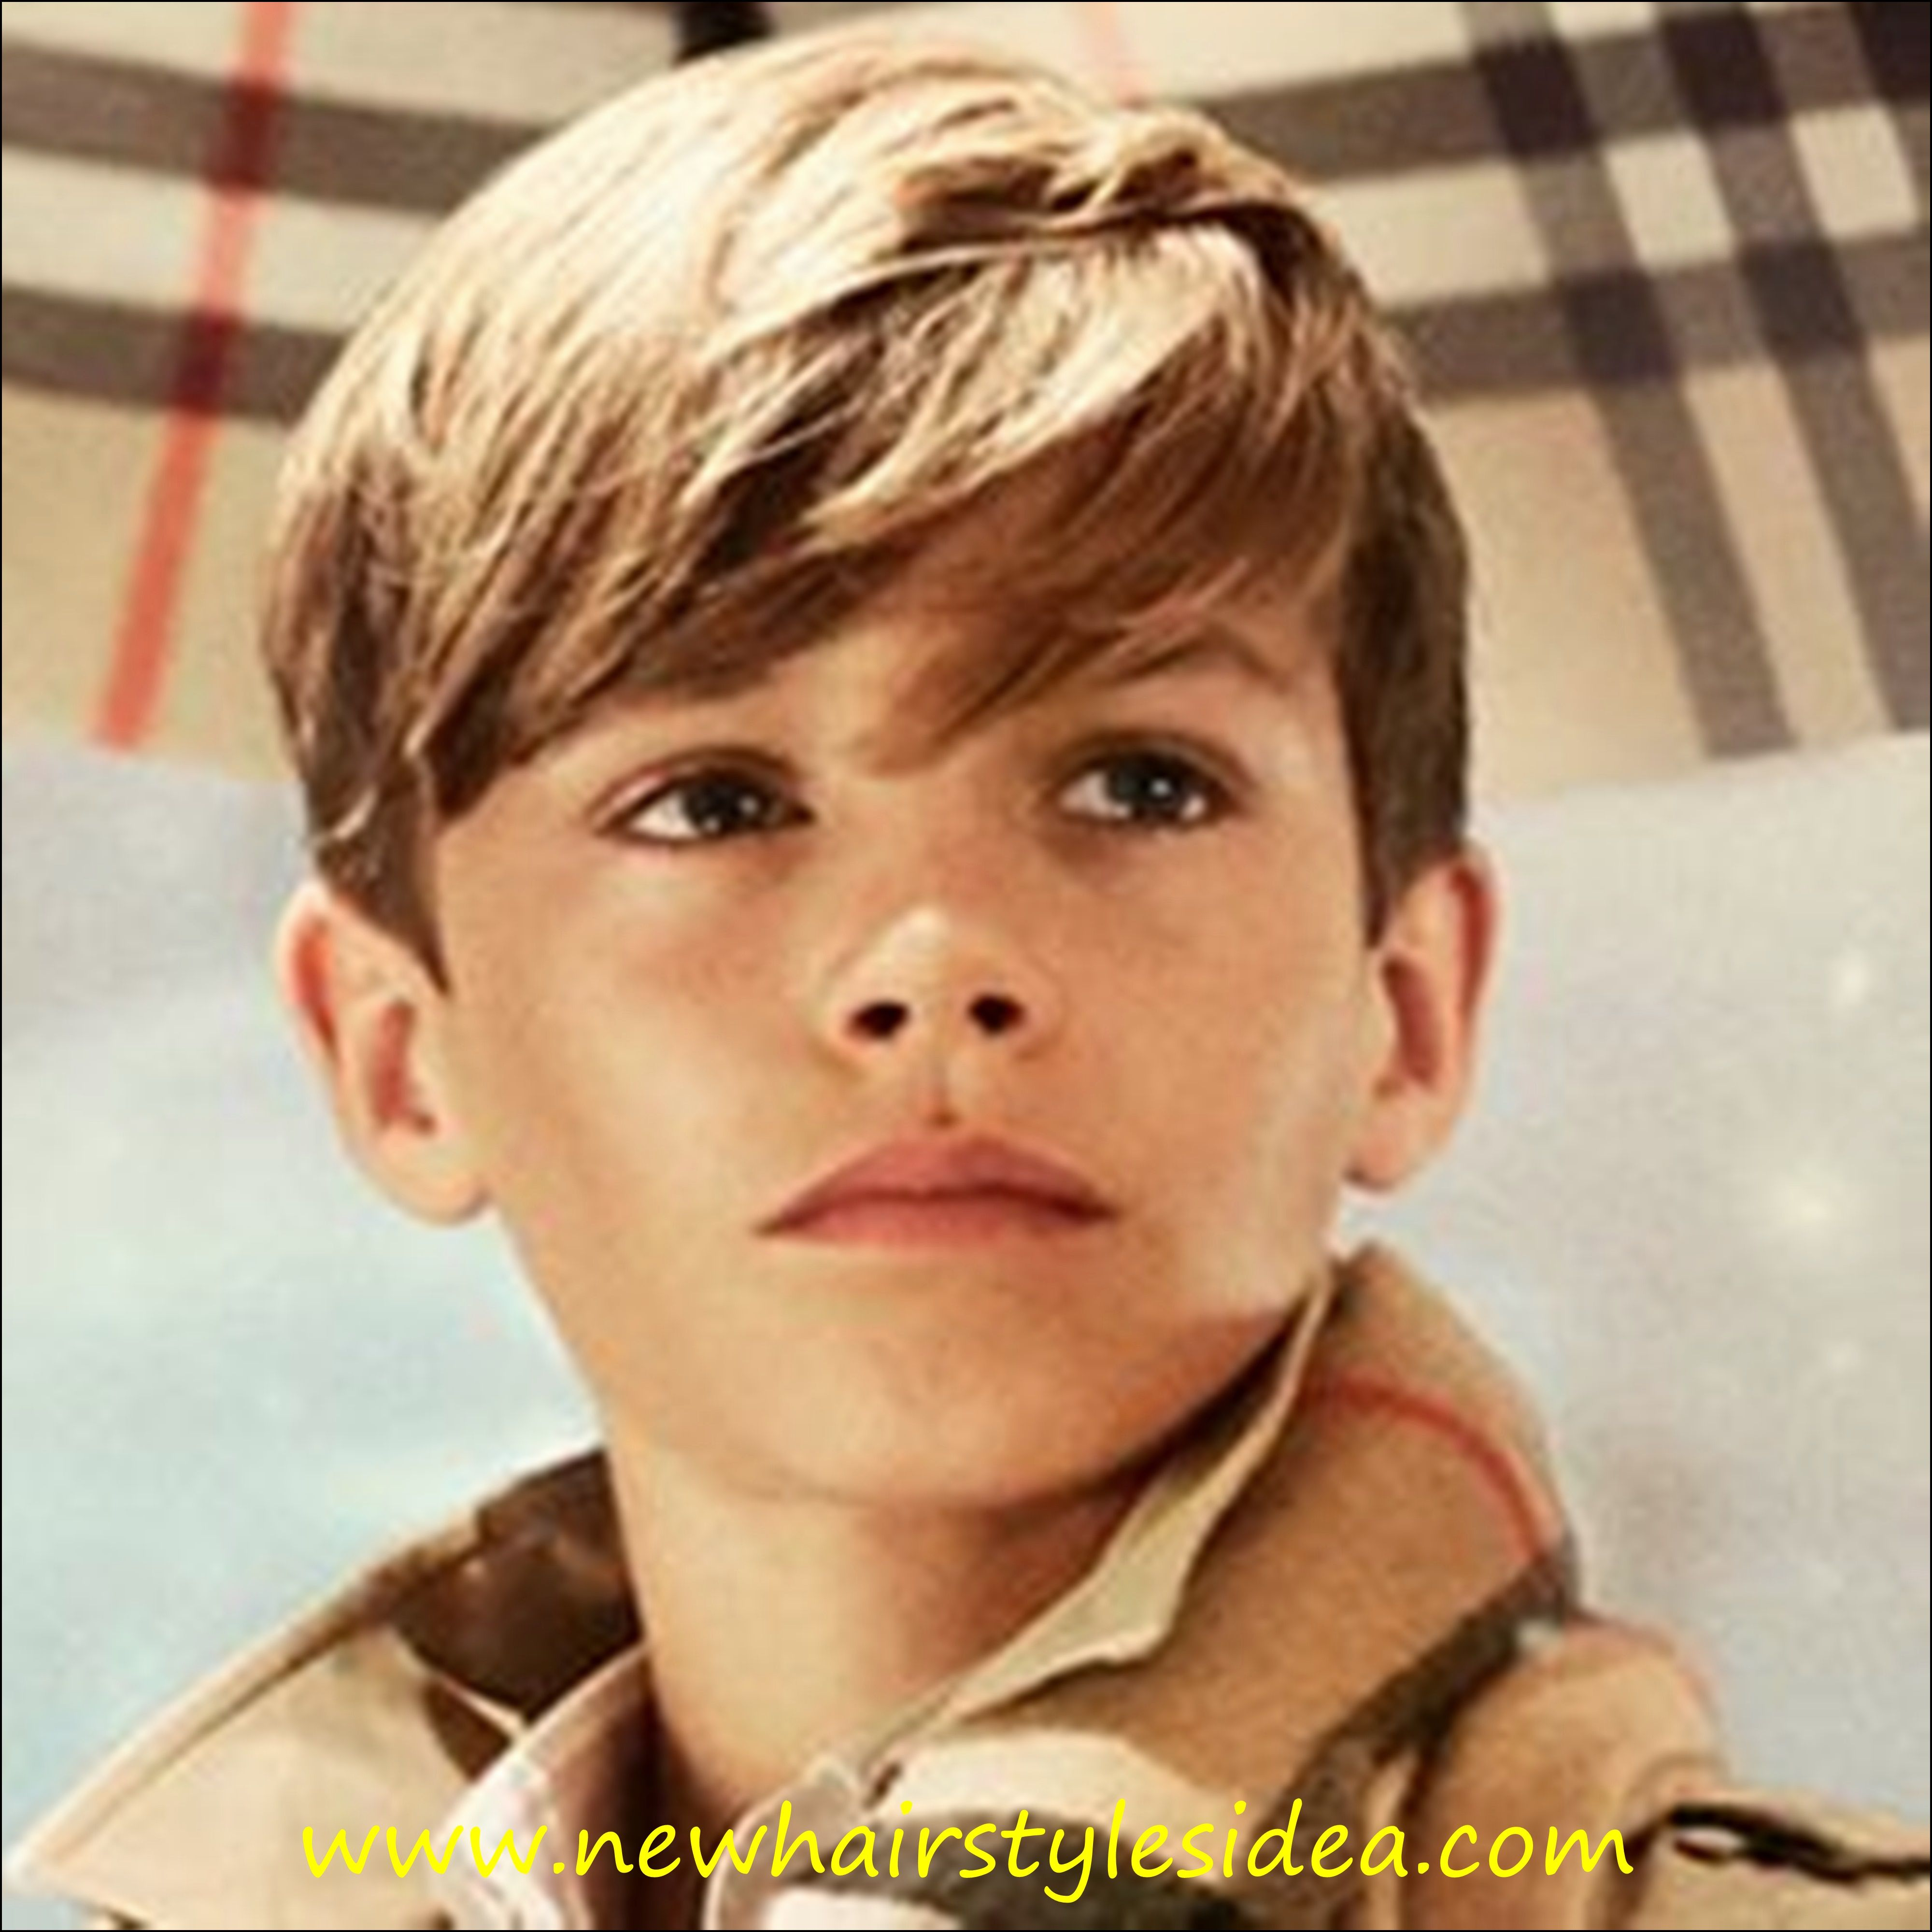 Remarkable Image Result For Hip Haircuts For 11 Year Old Boys Cameron Short Hairstyles For Black Women Fulllsitofus